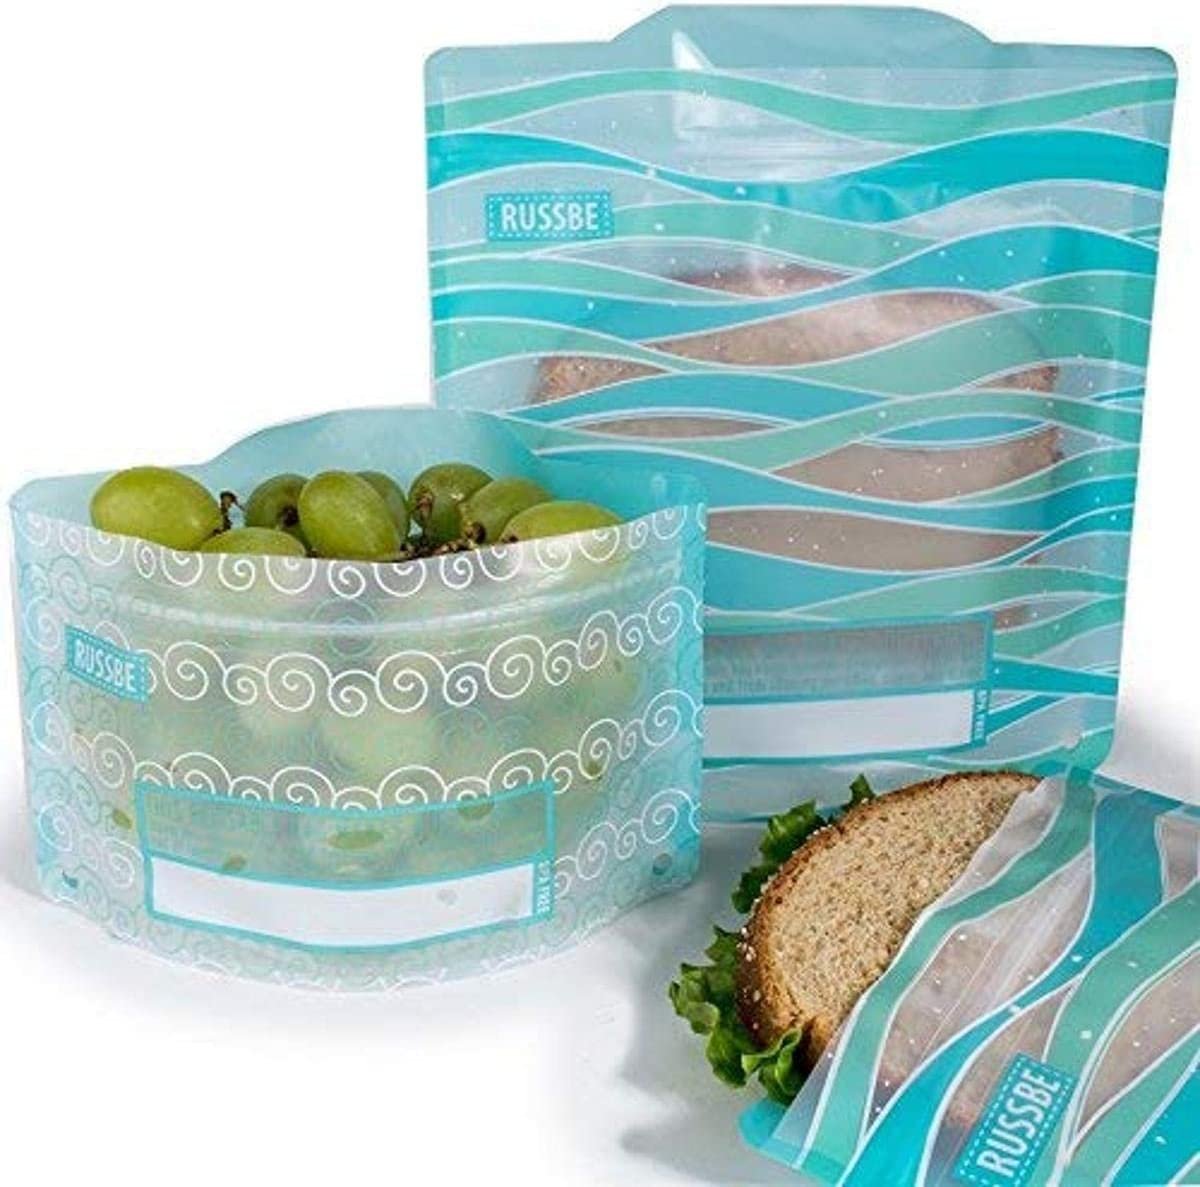 Russbe Waves Reusable Snack & Sandwich Bags (Set Of 4), Turquoise